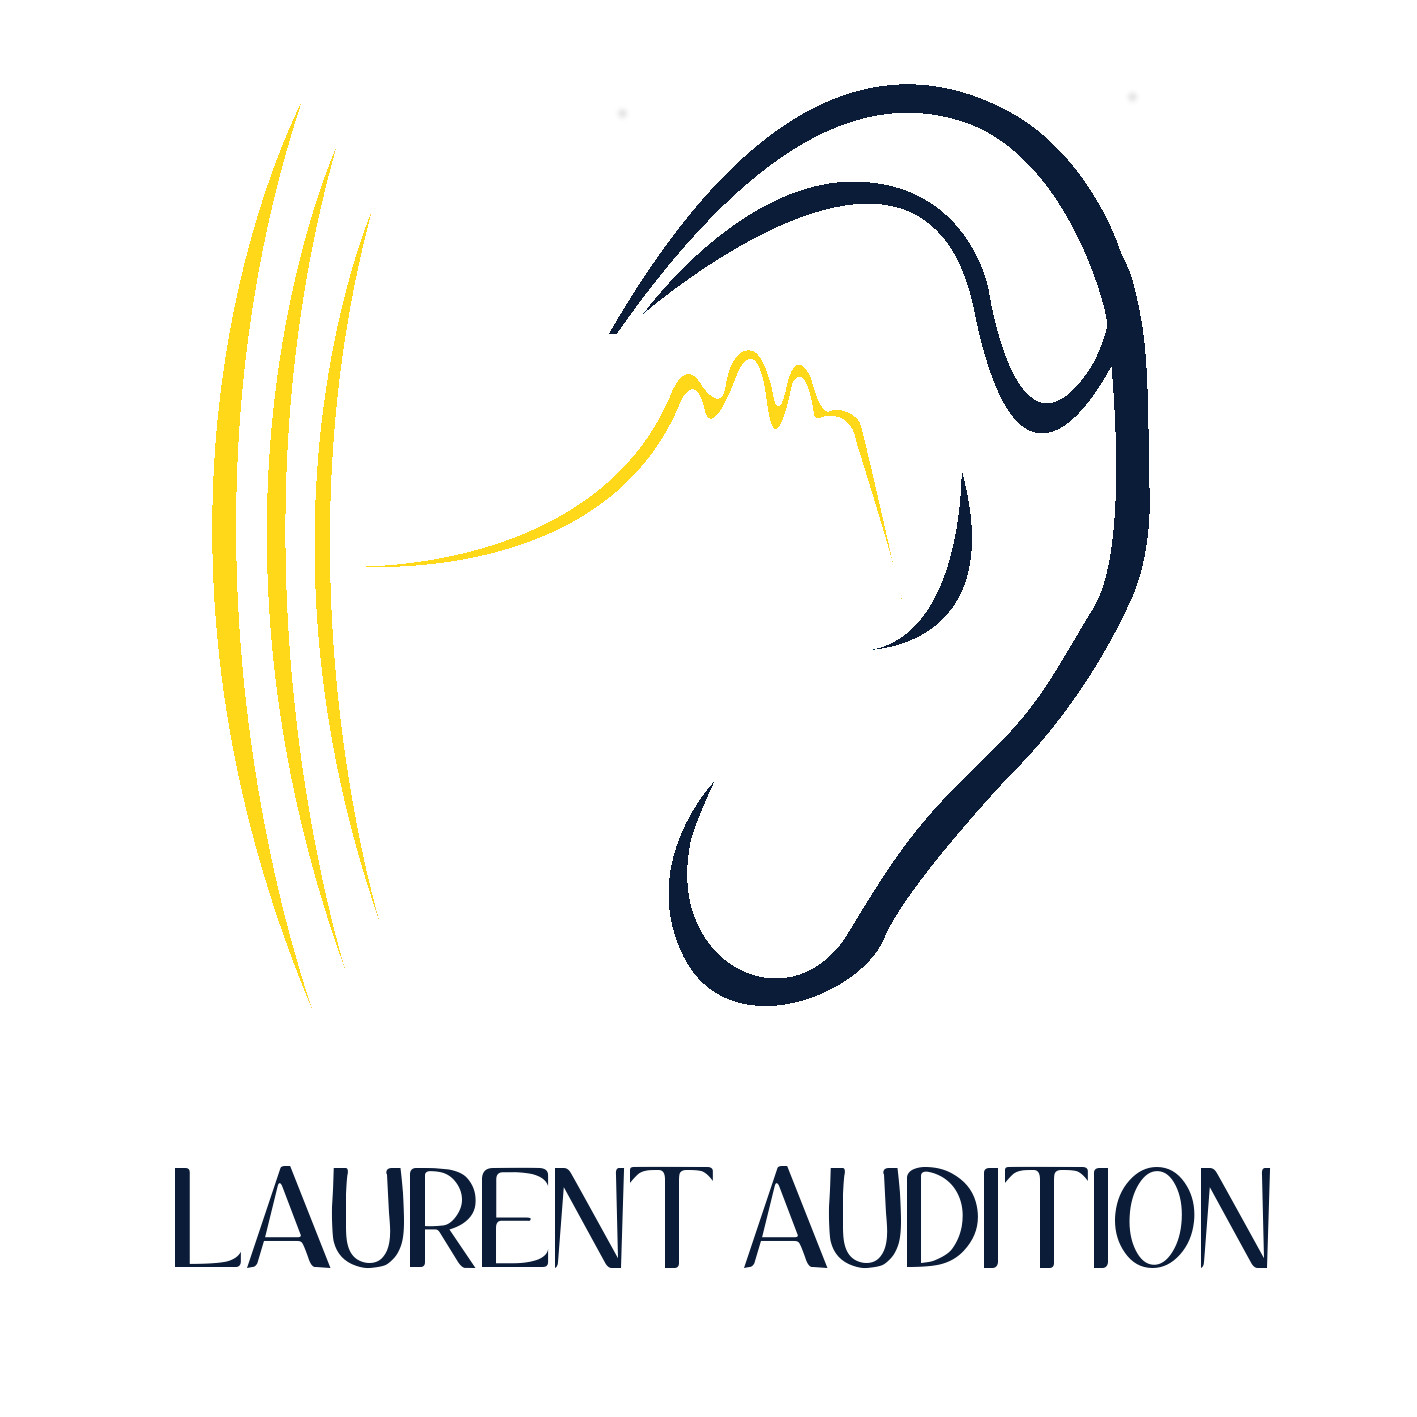 LAURENT AUDITION